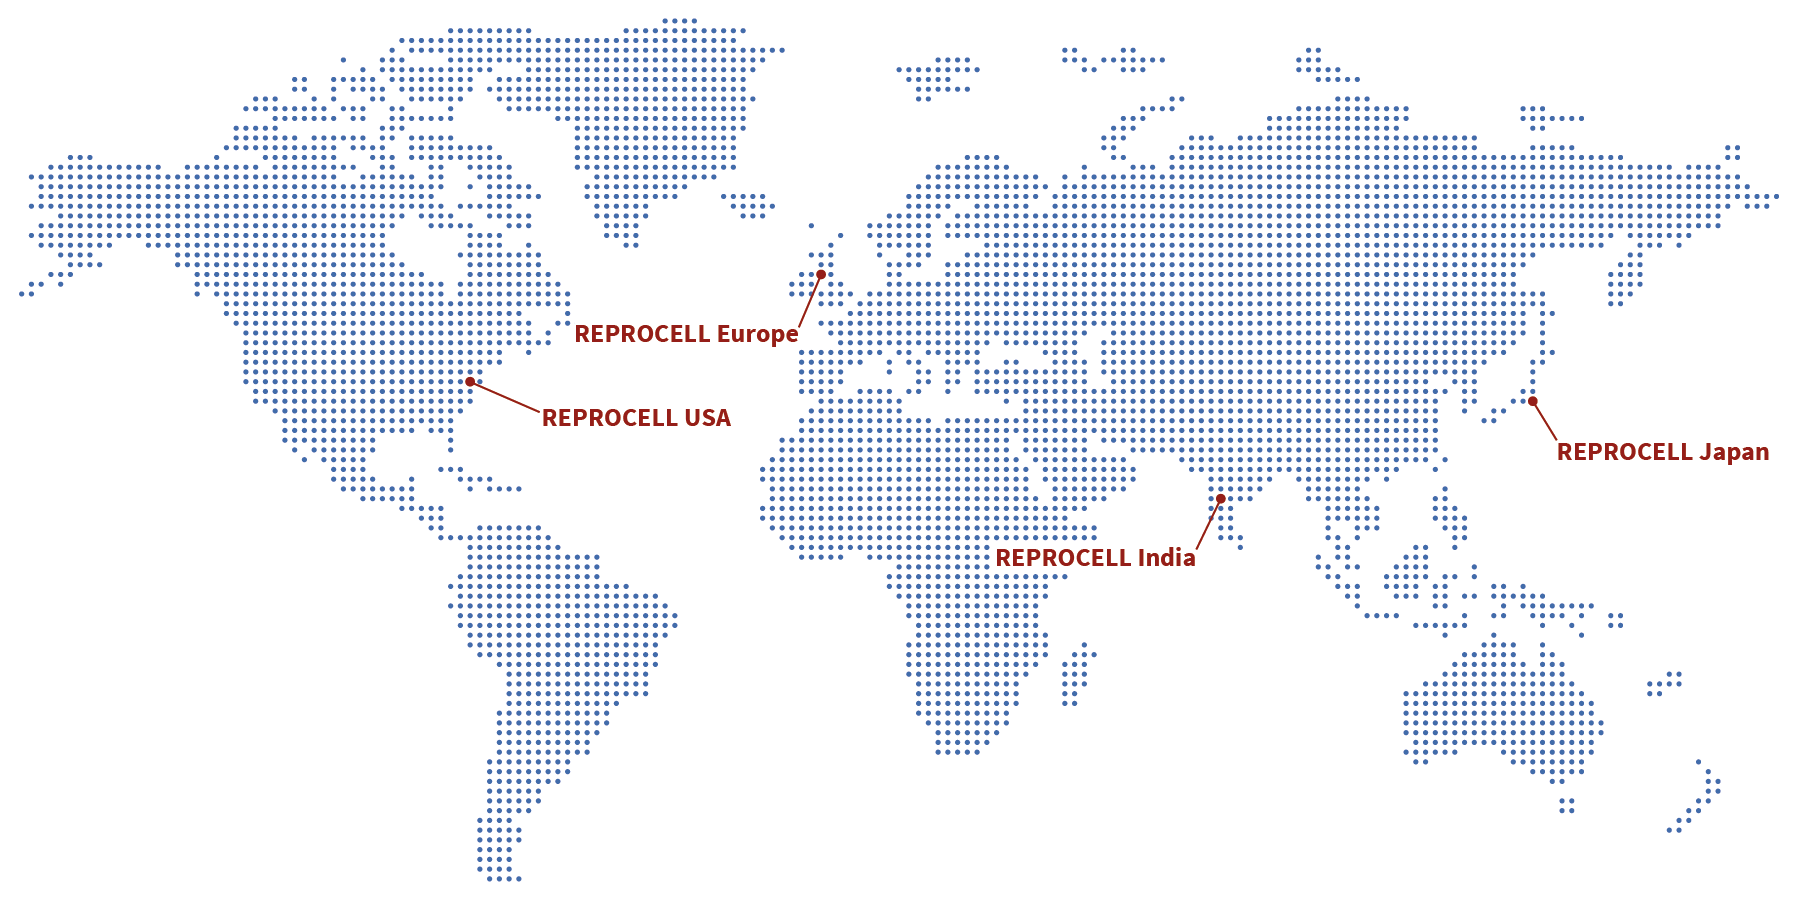 reprocell-map-global-2019